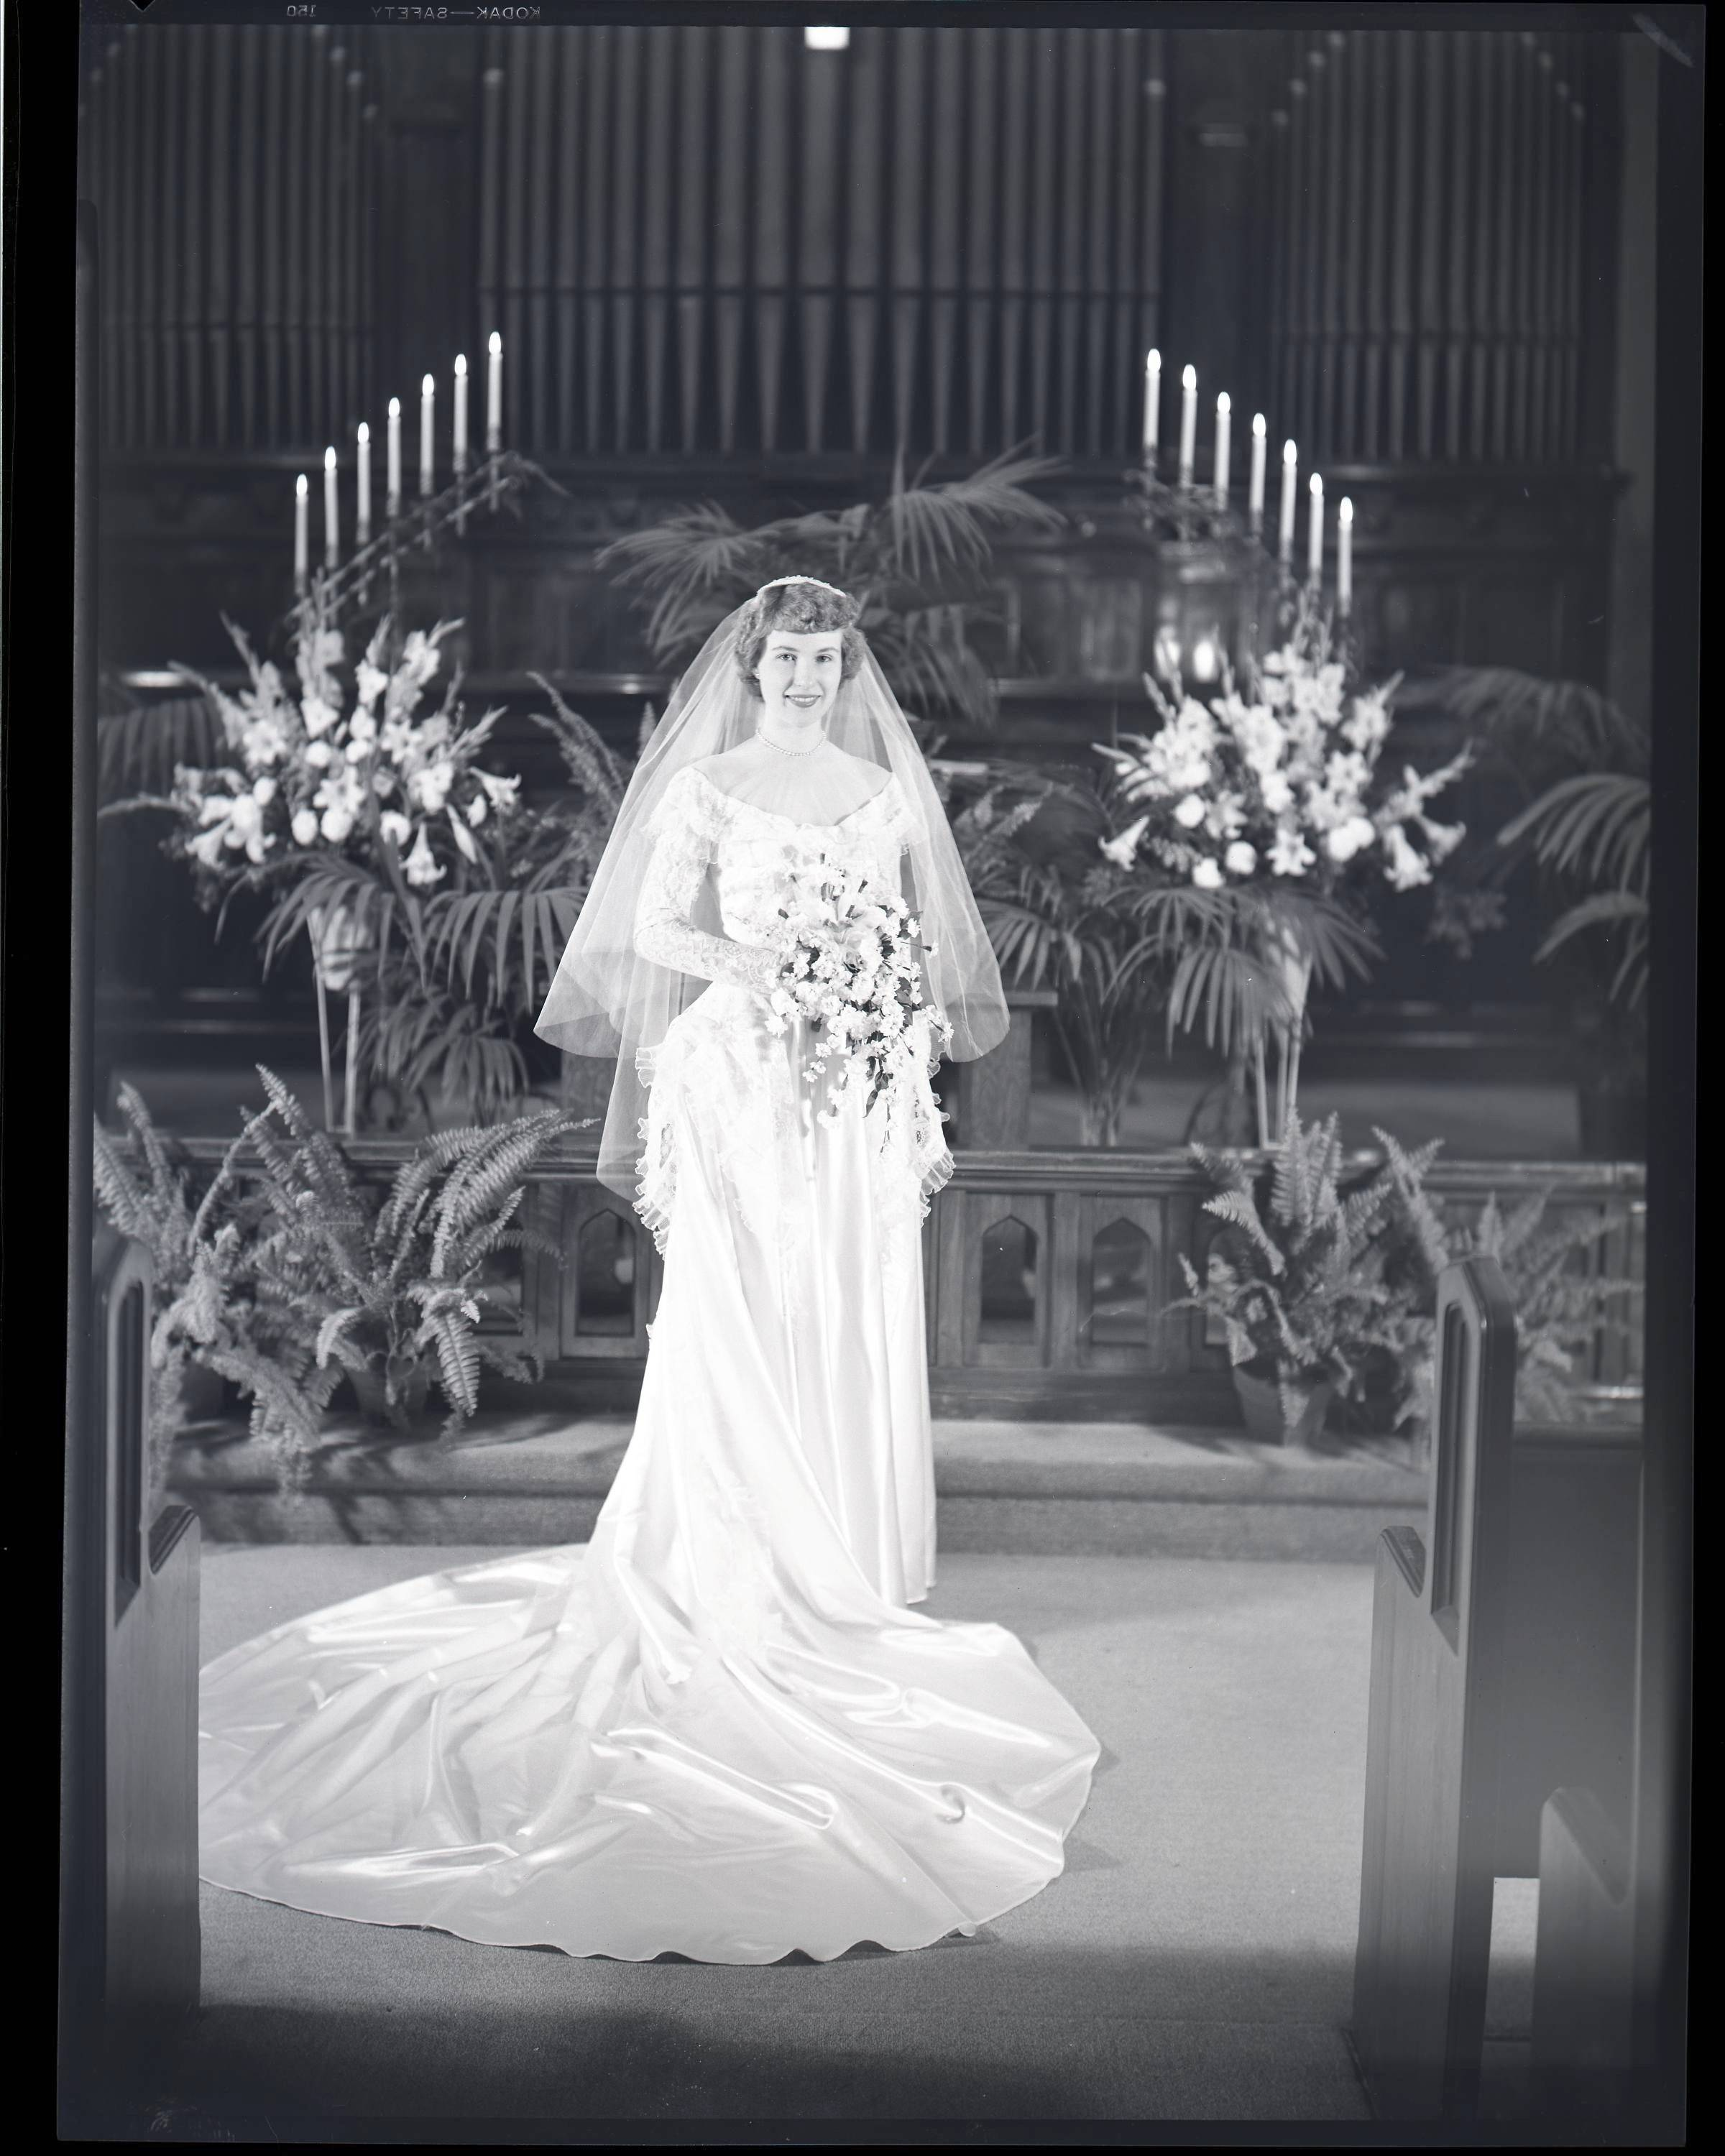 Dale Moorhouse of Elgin has hundreds of vintage wedding photos, dating from the 1940s and '50s, which he'd like to identify. More of his collection can be viewed online at www.turn2dale.phanfare.com/.